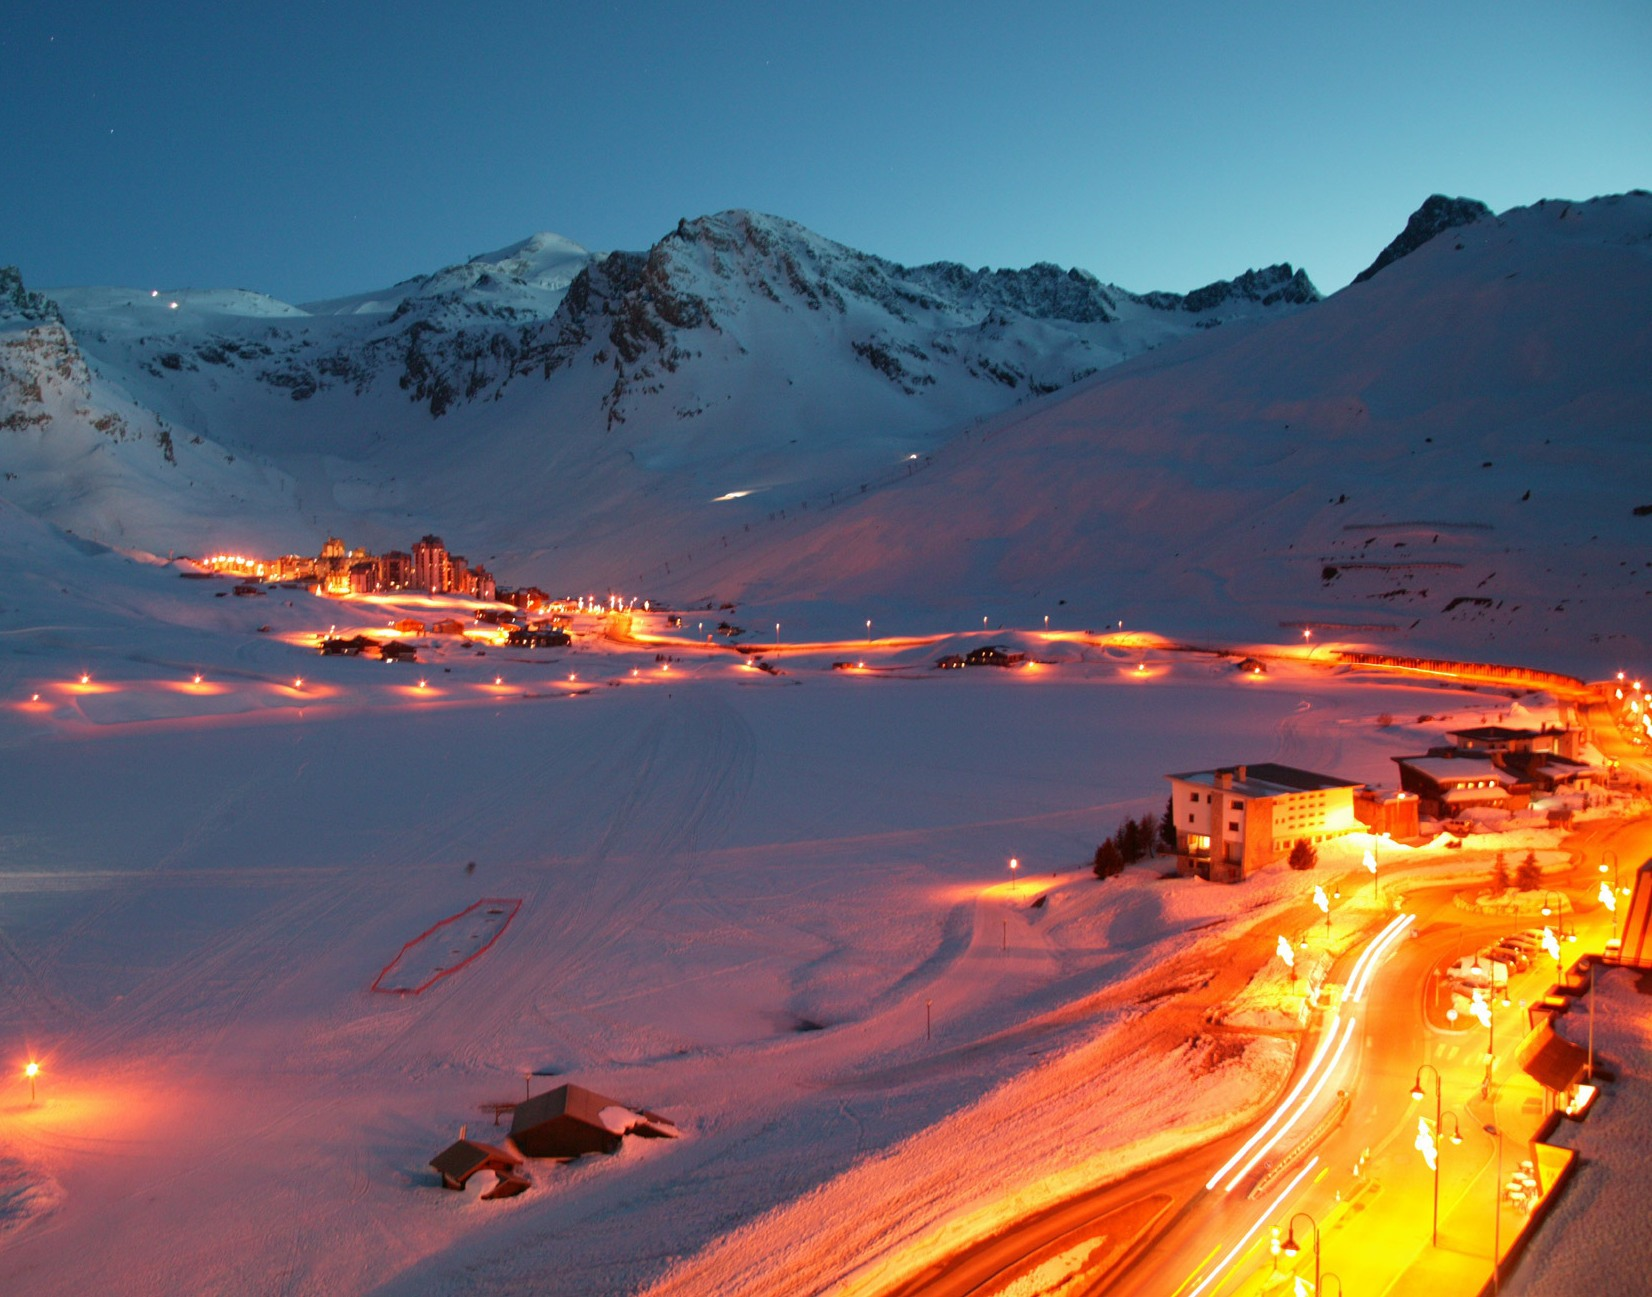 Night lights at the ski resort of Tignes France wallpapers and 1652x1297